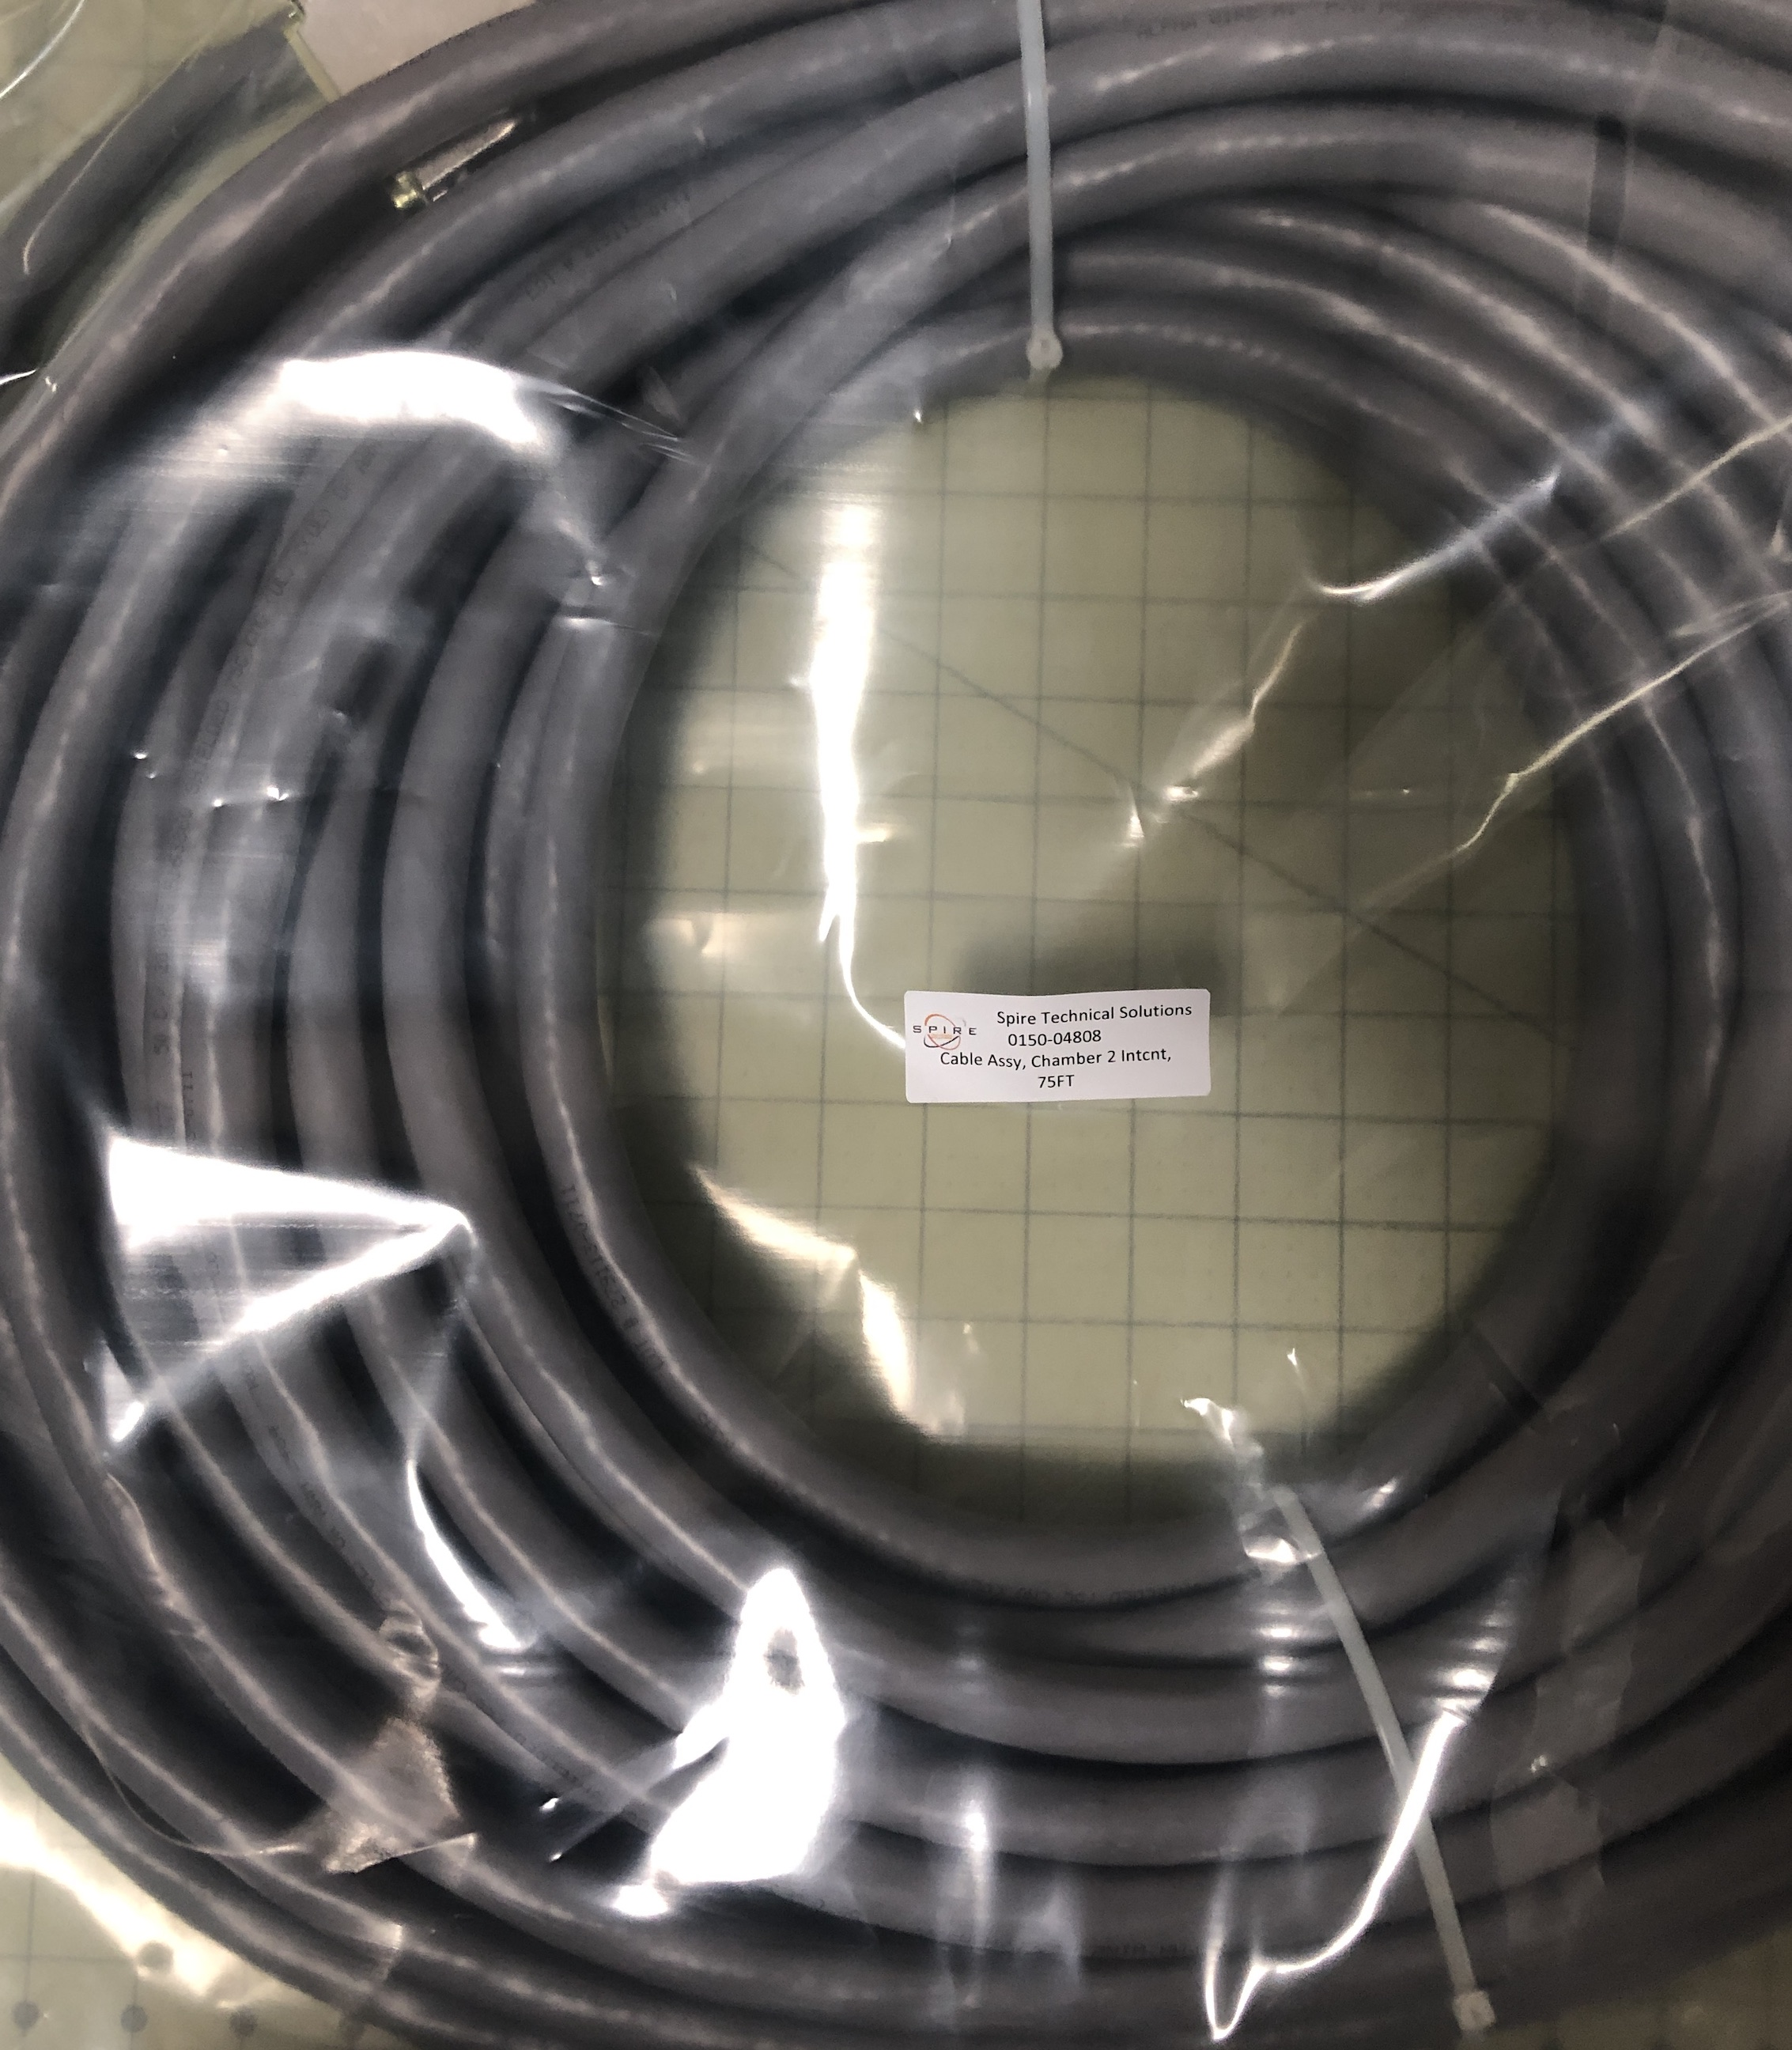 Cable Assy, Chamber 2 Intcnt, 75FT